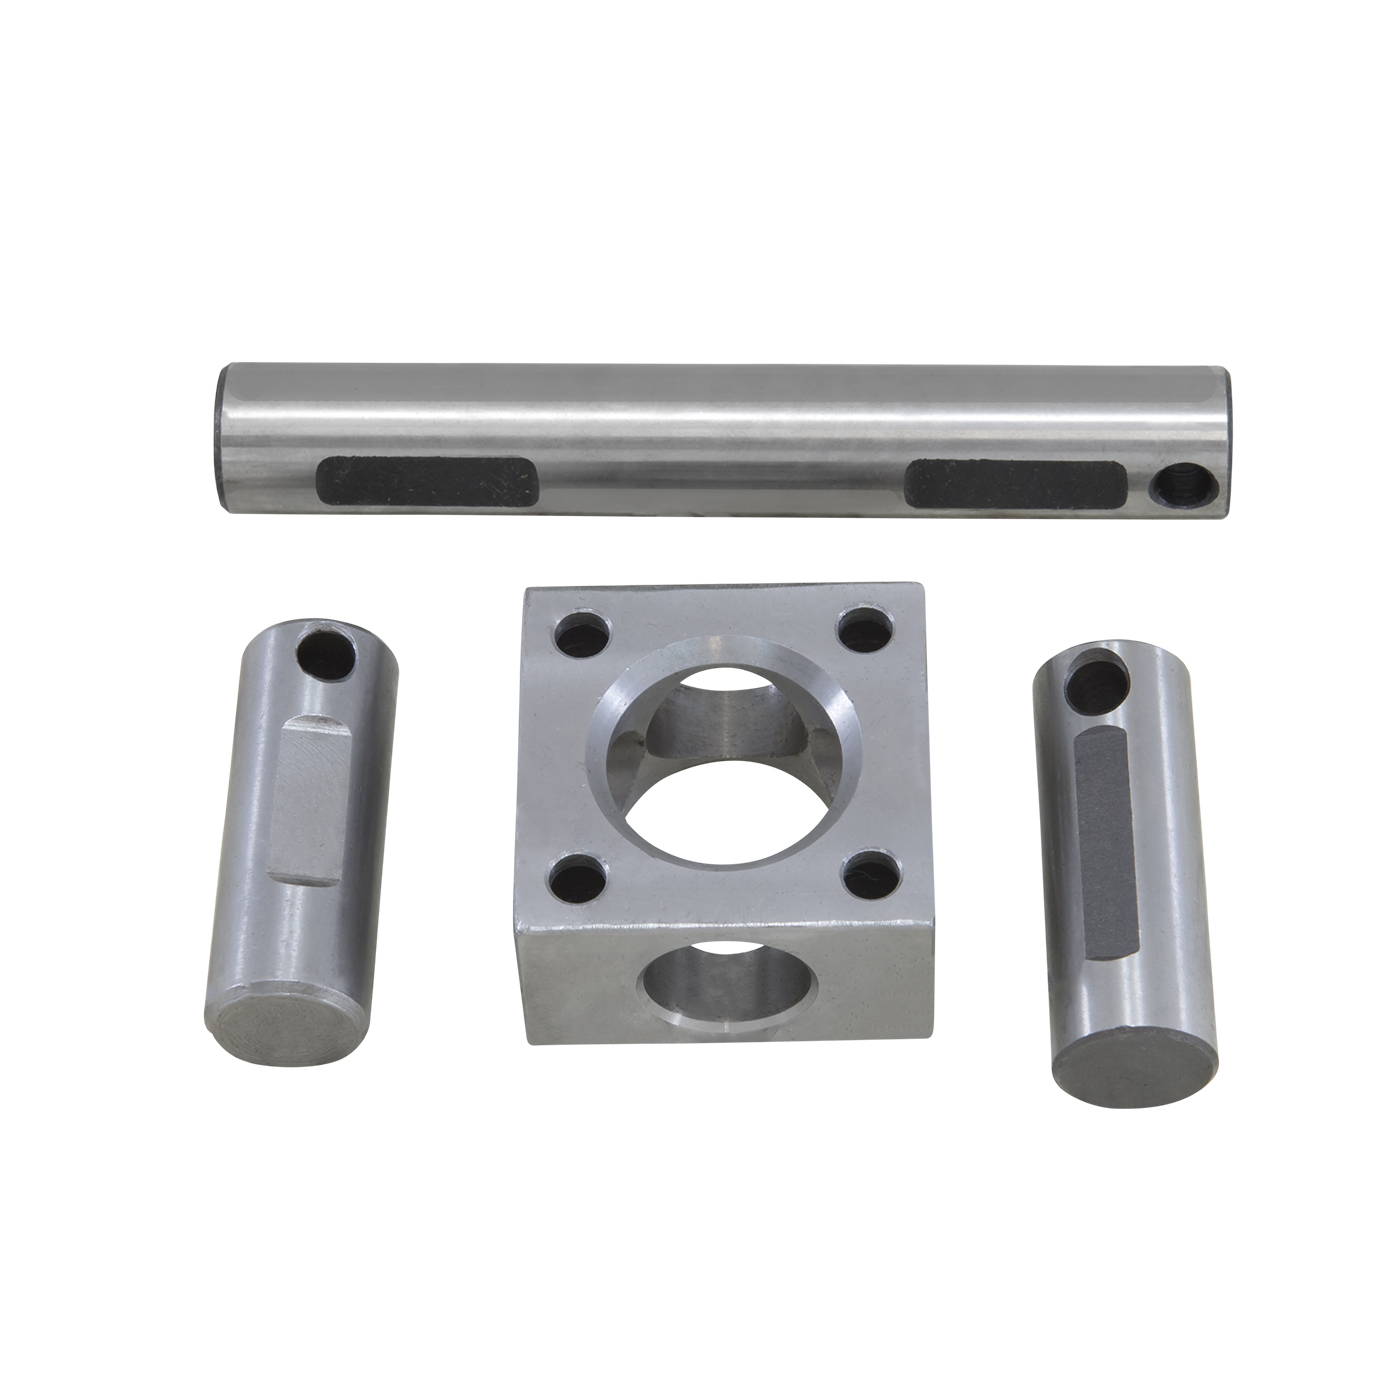 YSPXP-028 - Standard open or TracLoc cross pin shafts and block in four pinion design for 9